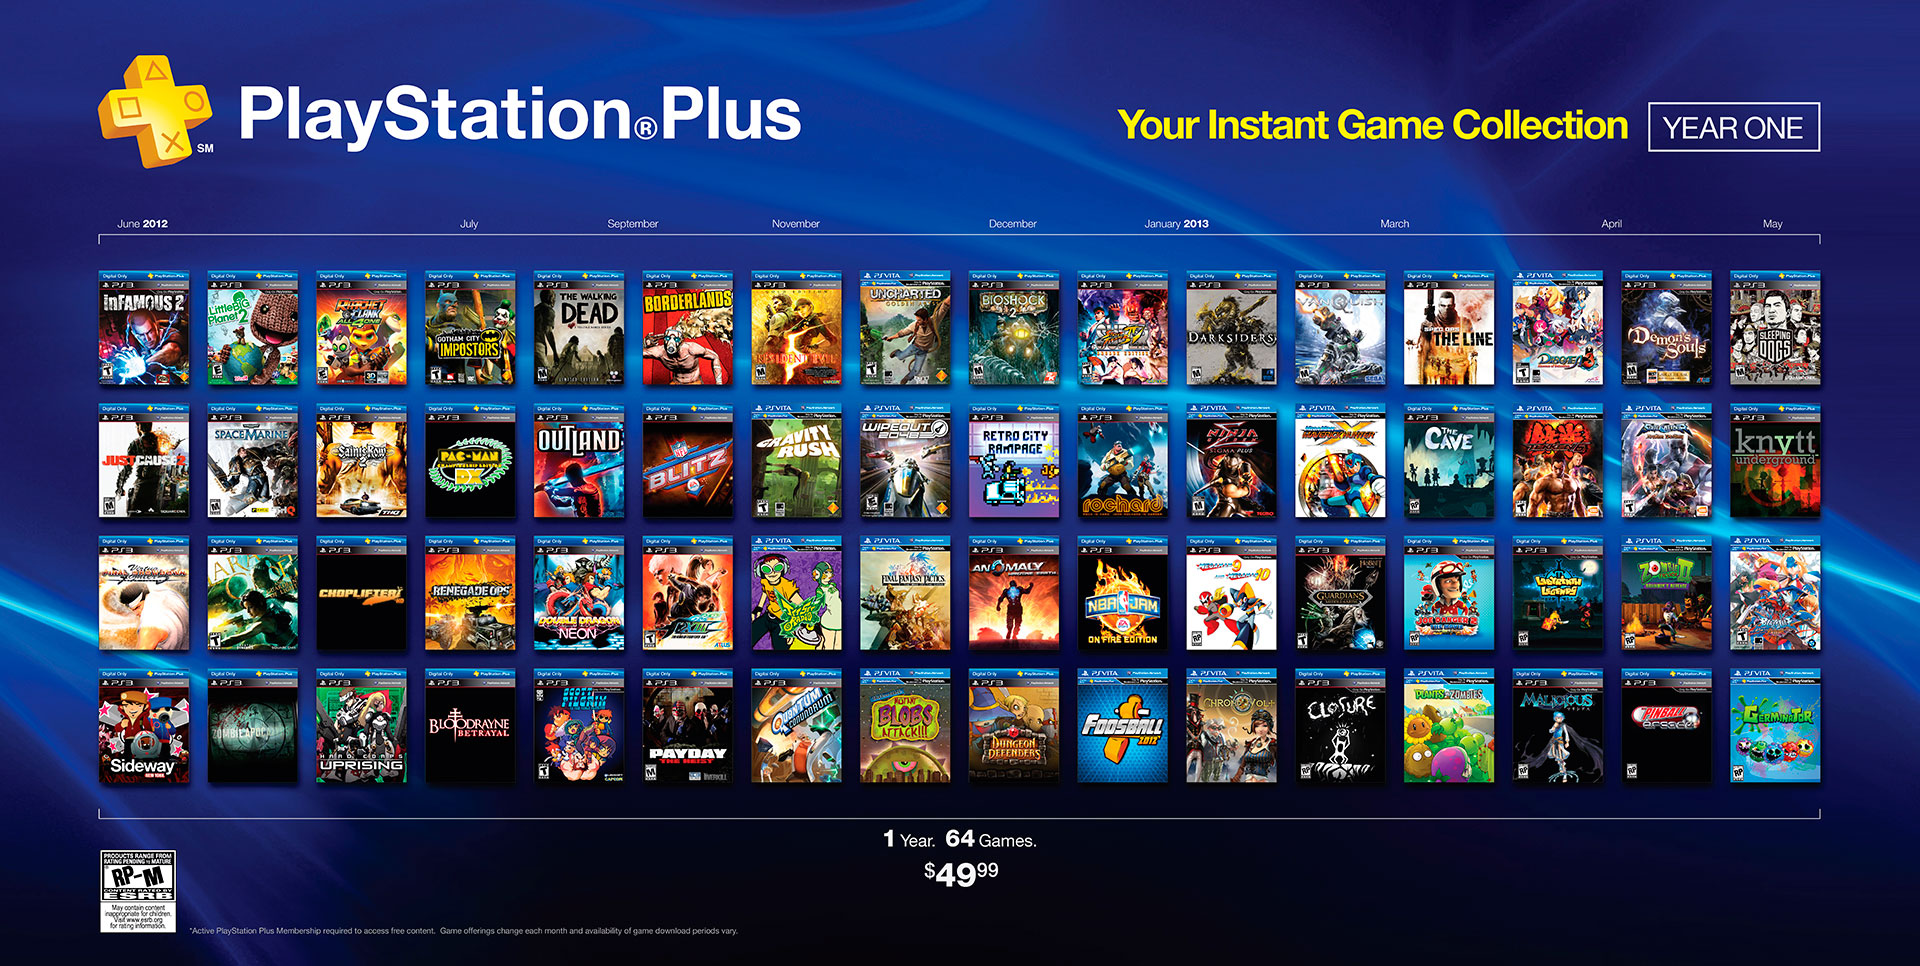 With services like PlayStation Plus, the games just won't stop coming. It's hard to keep up!